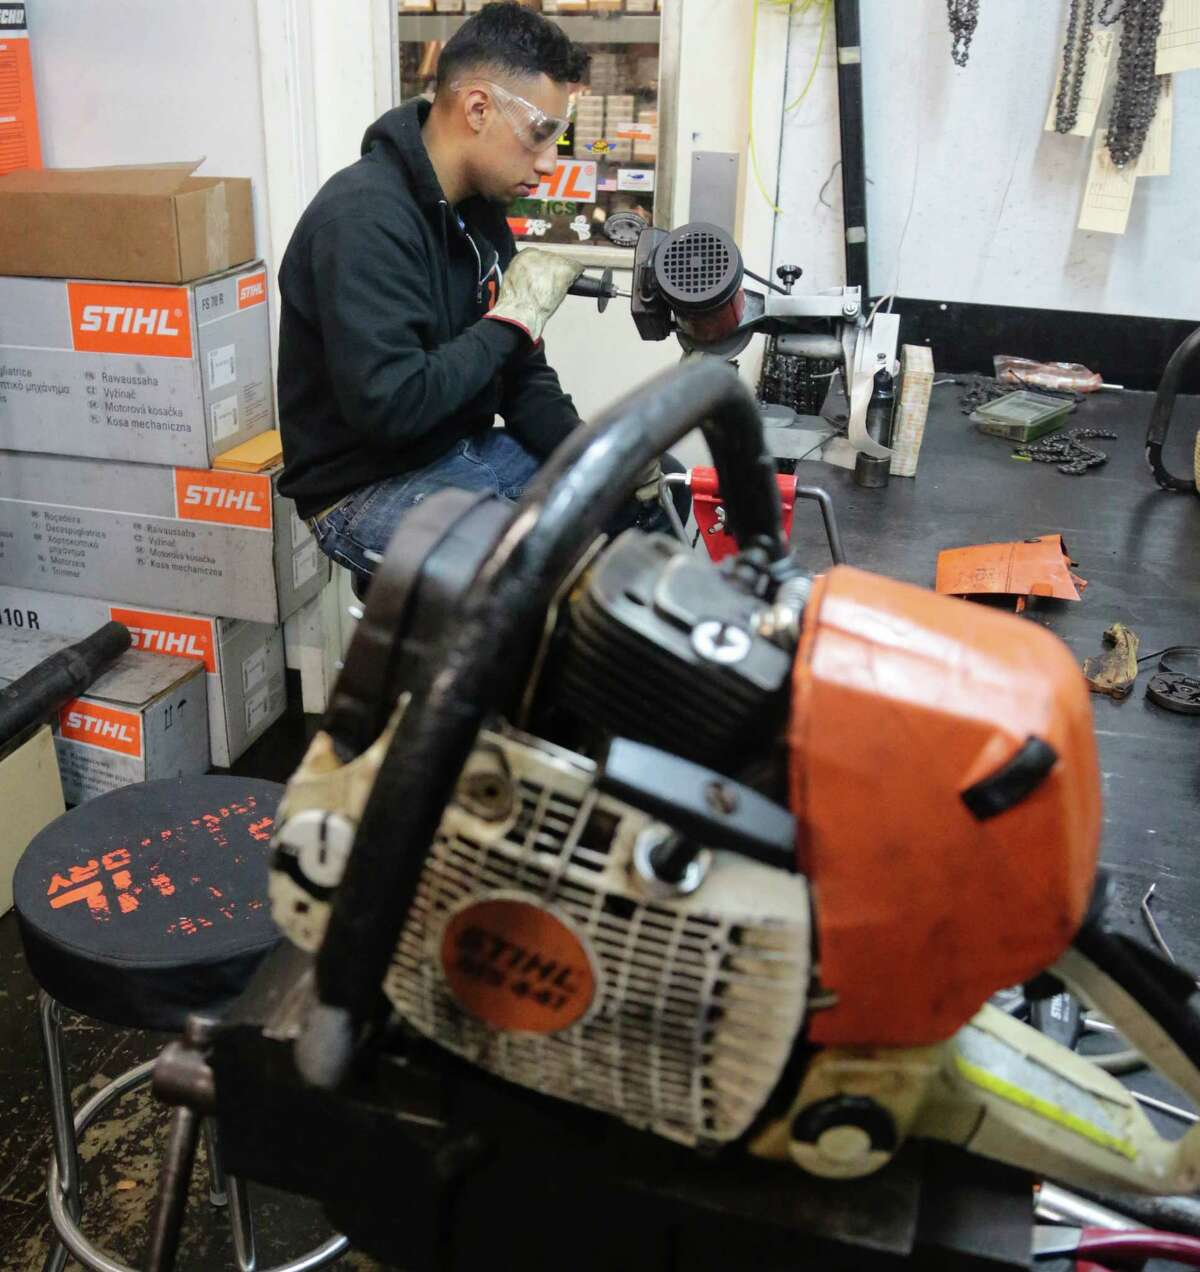 Geovanny Mata sharpens blades on a chain saw. The Cantu brothers like to mentor young people.